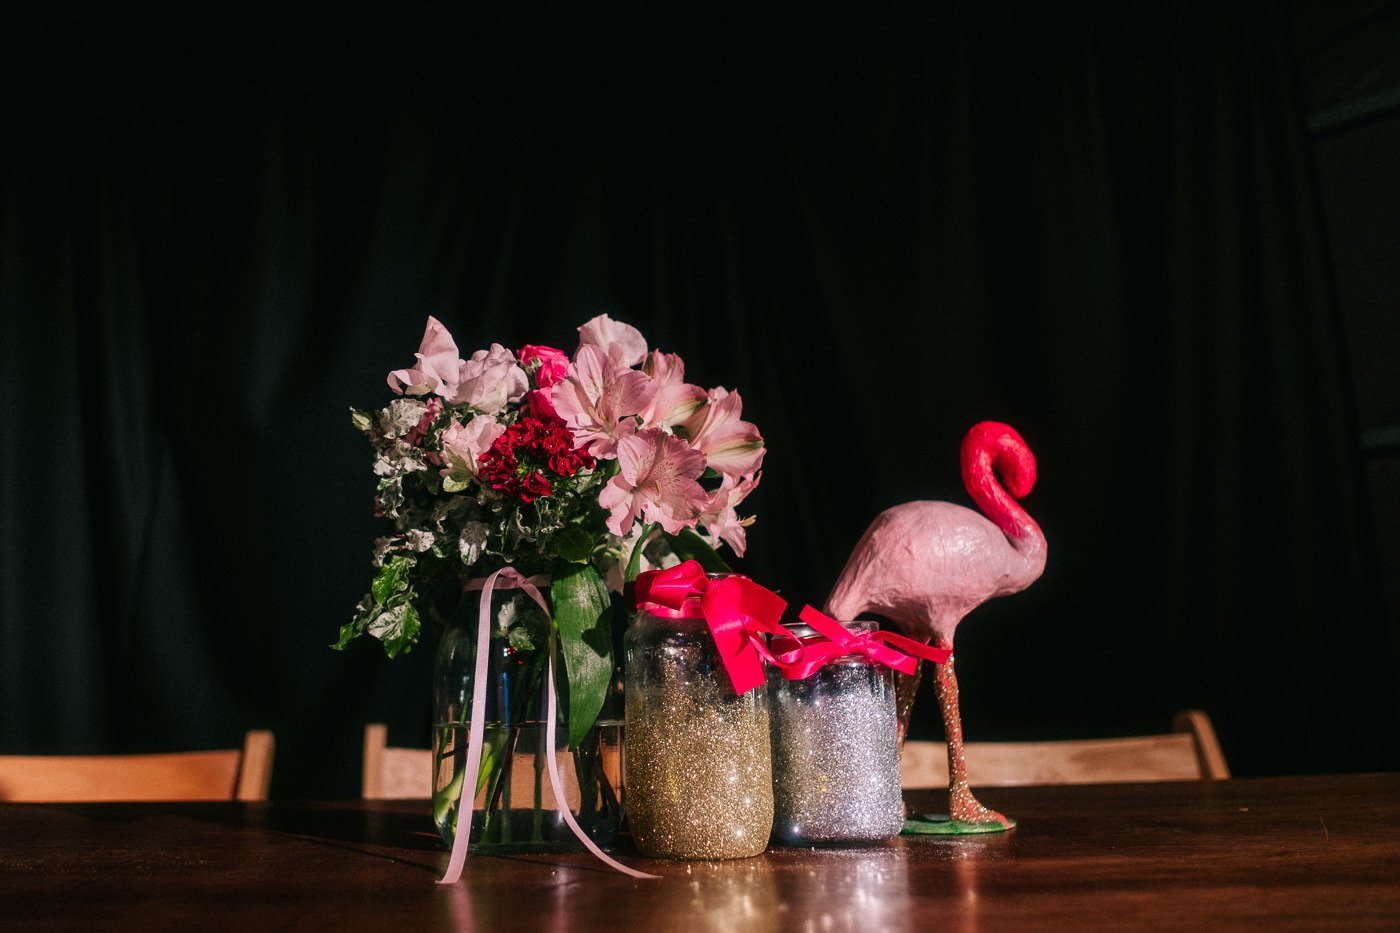 Flamingo wedding decor alternative rock venue wedding